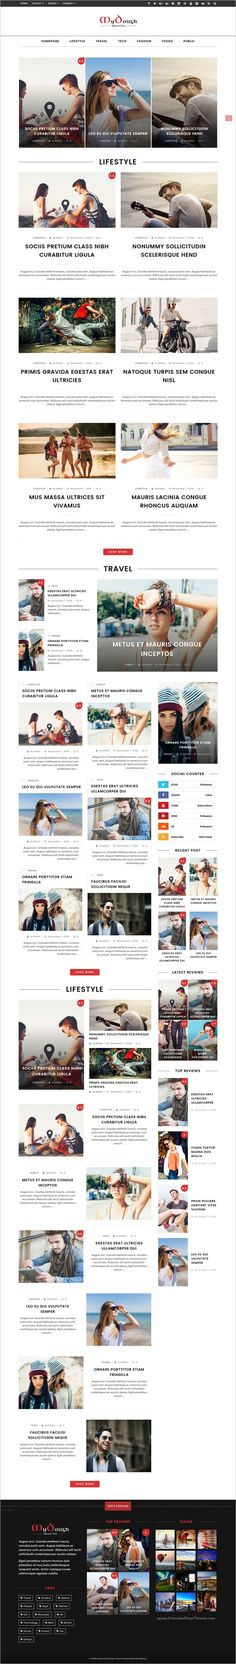 Mydaugh is a flat and super flexible responsive 5in1 #WordPress theme for #blog, #magazine or news website download now➩ https://themeforest.net/item/mydaugh-a-wordpress-blog-magazine-theme/18701763?ref=Datasata